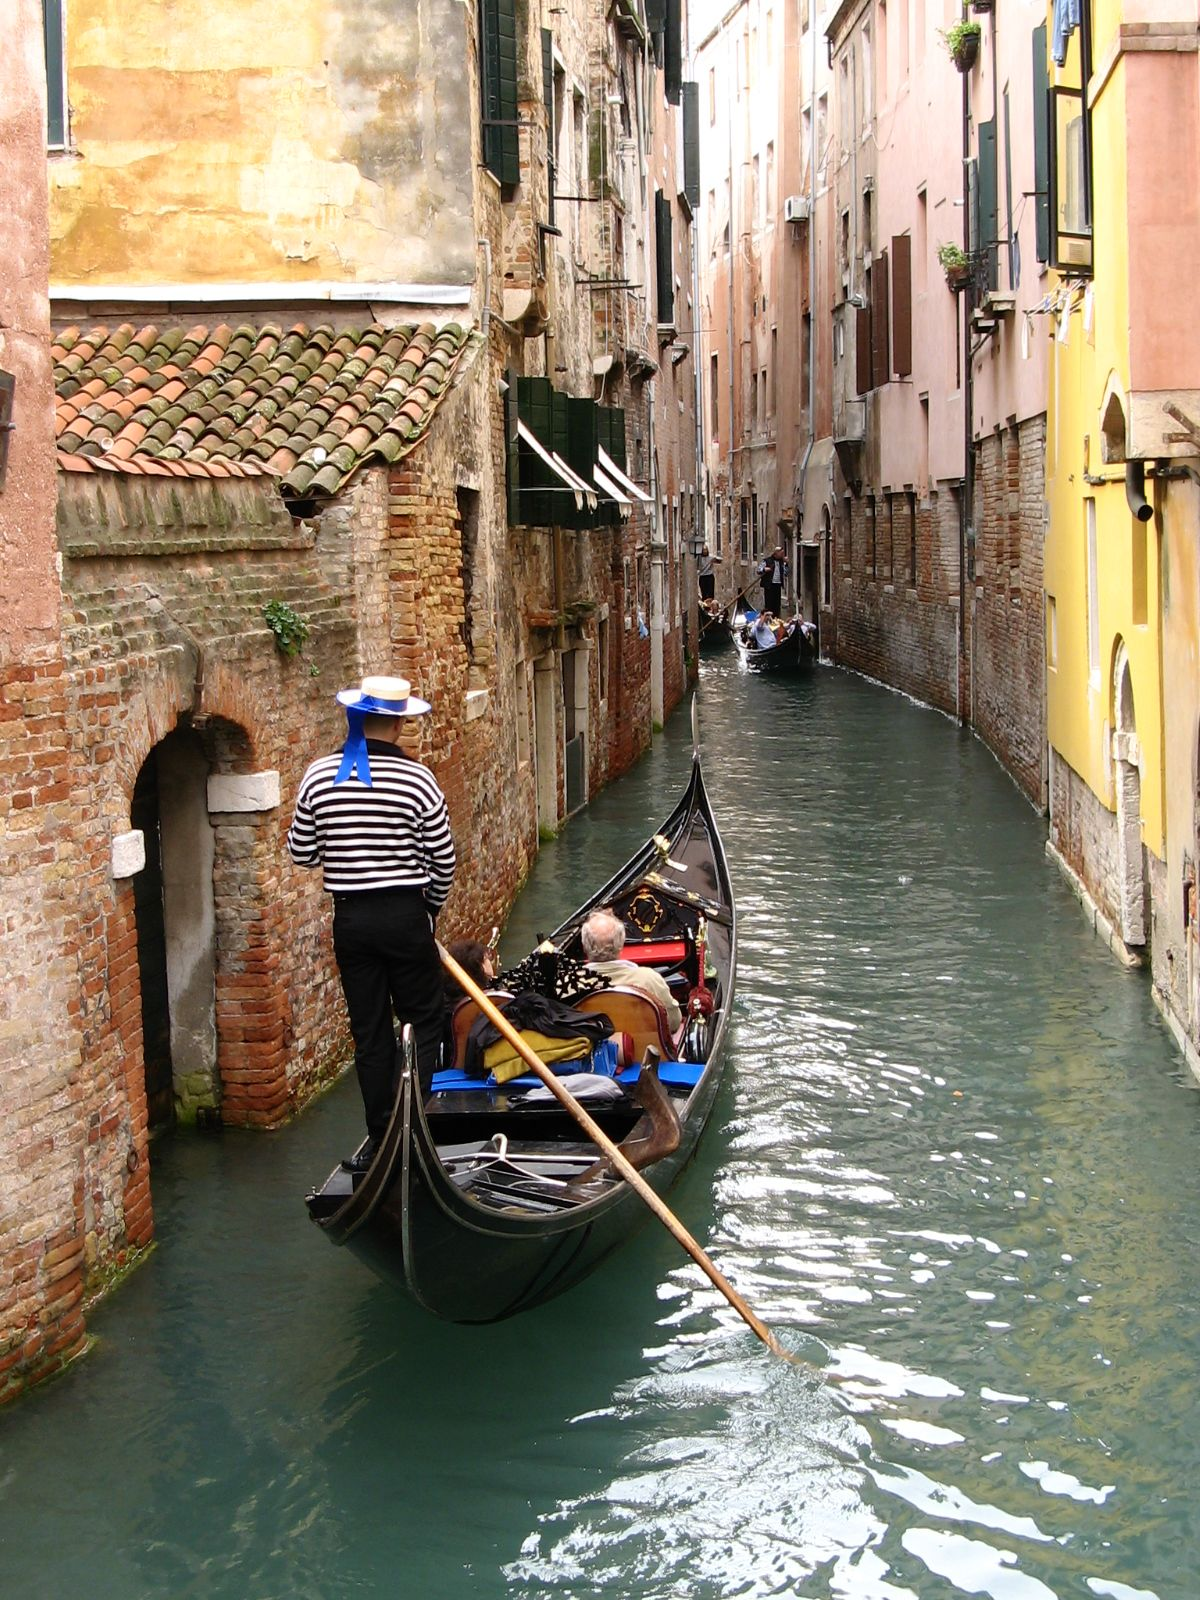 Venice Tourism Tripadvisor Has 954 451 Reviews Of Hotels Attractions And Restaurants Making